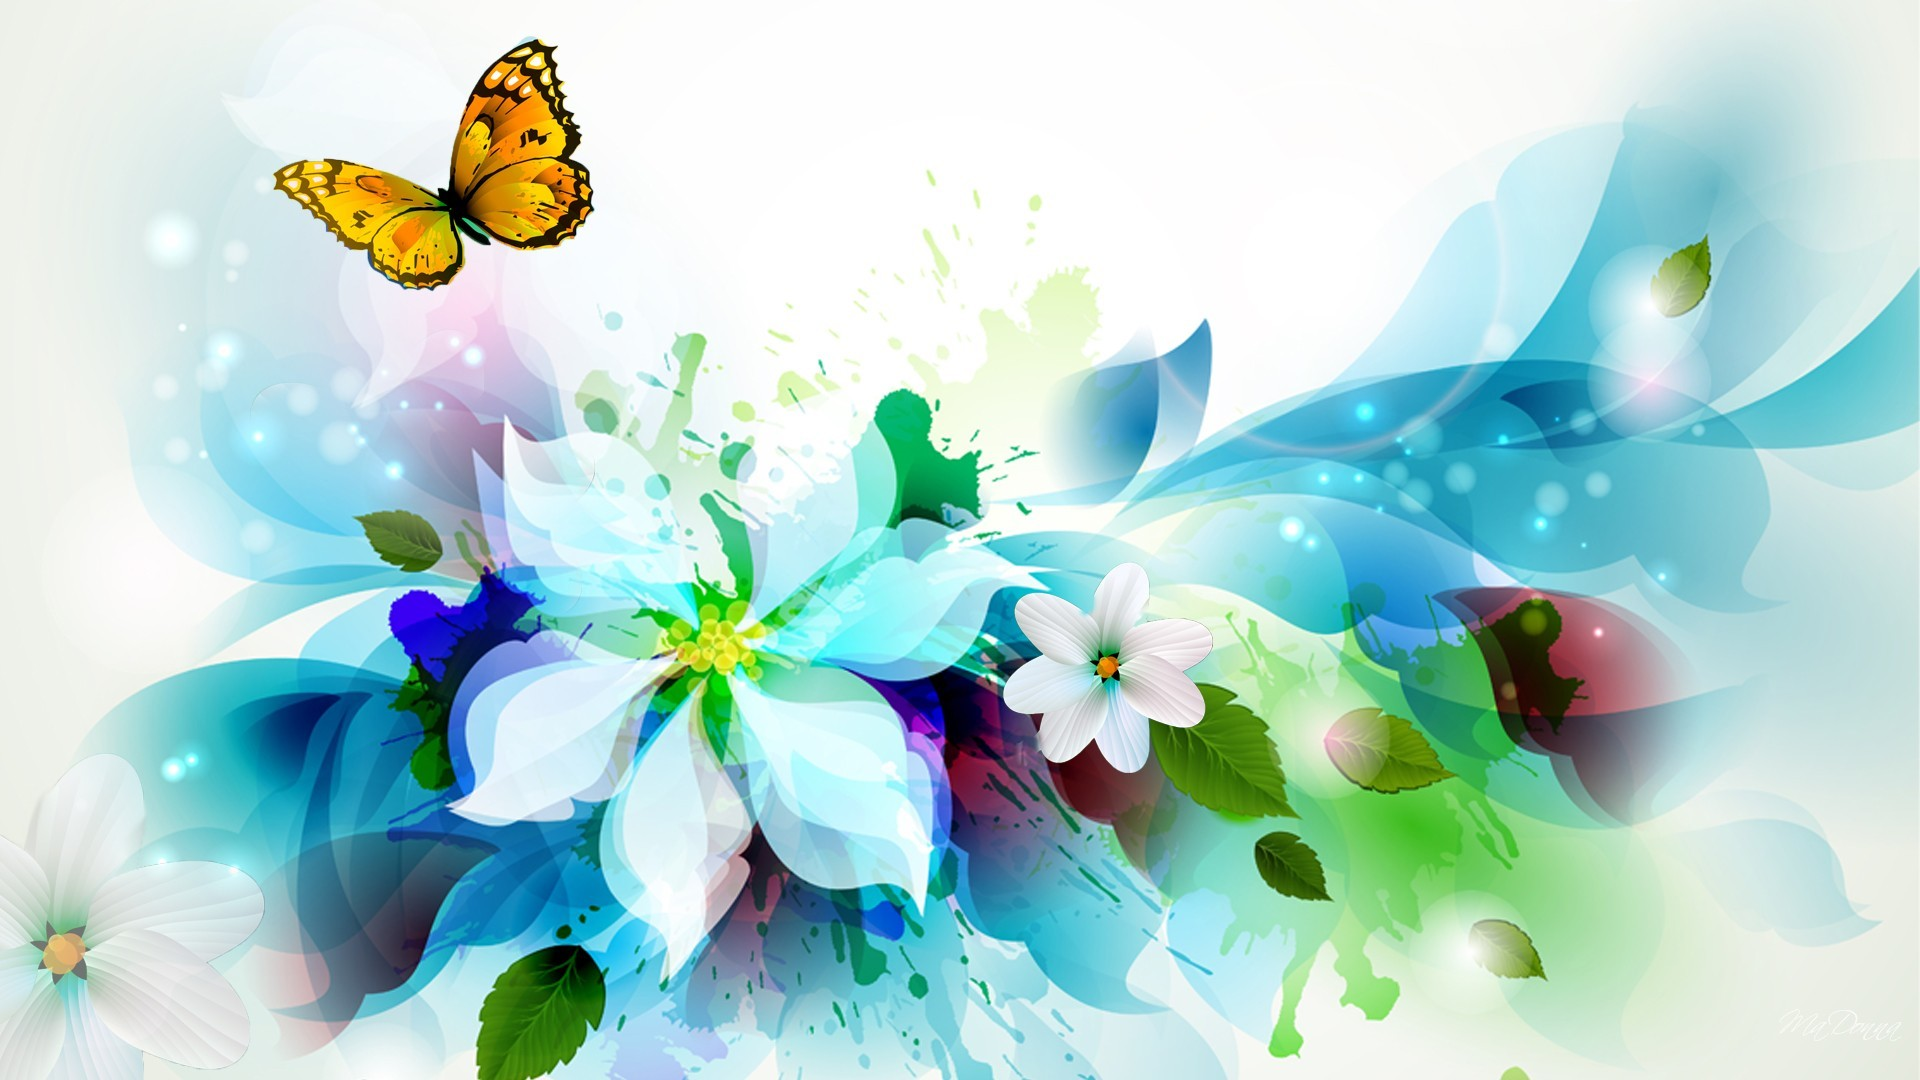 Watercolor Floral Abstract HD Desktop Background wallpaper free